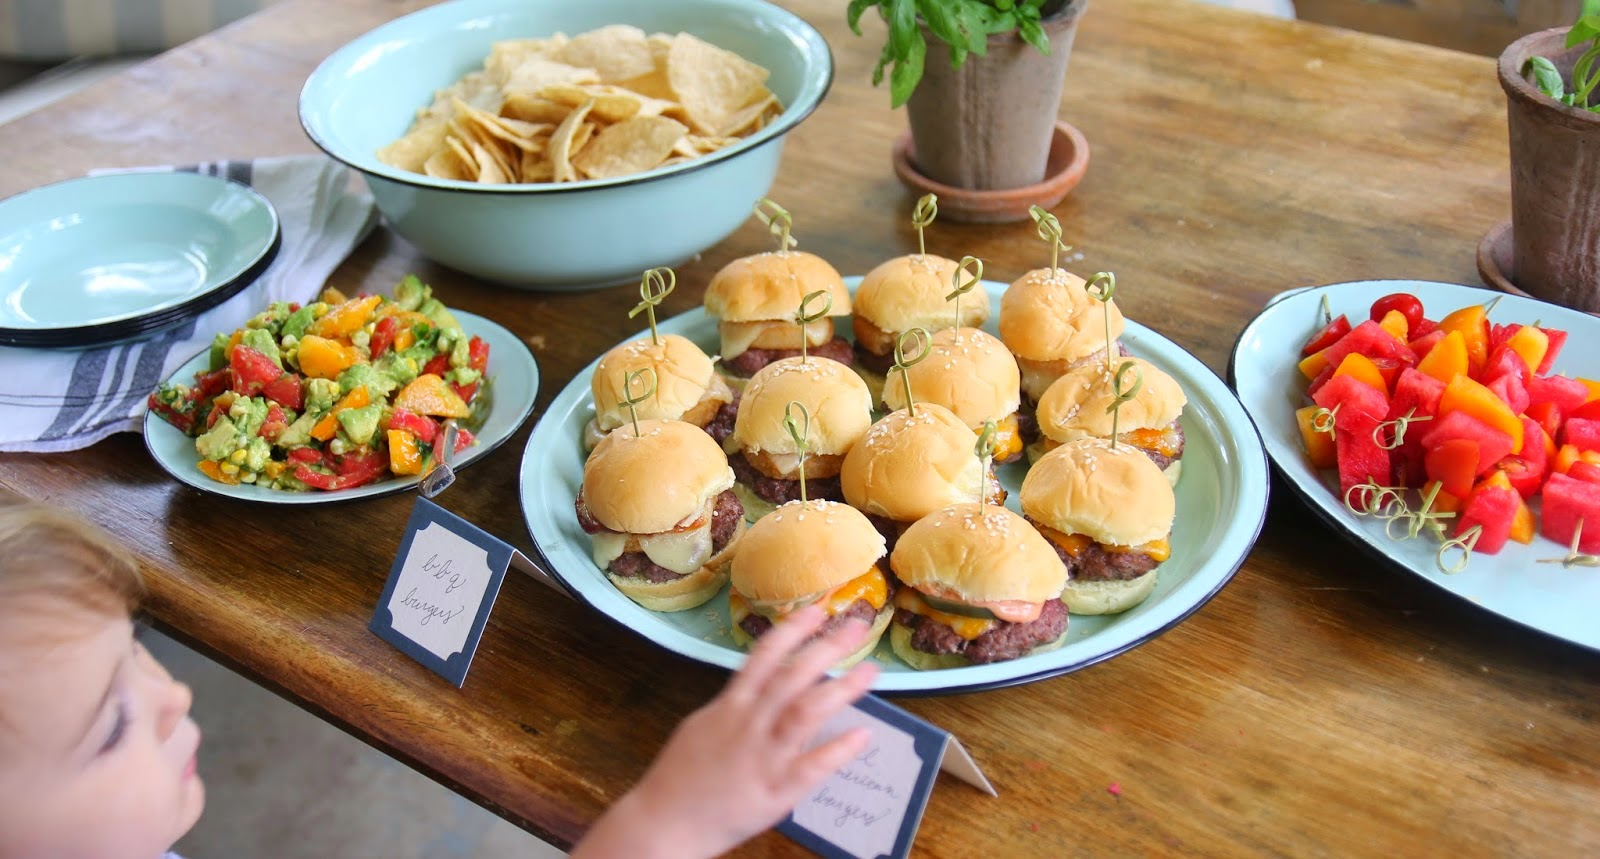 Jenny steffens hobick party food easy menu ideas for House party recipes